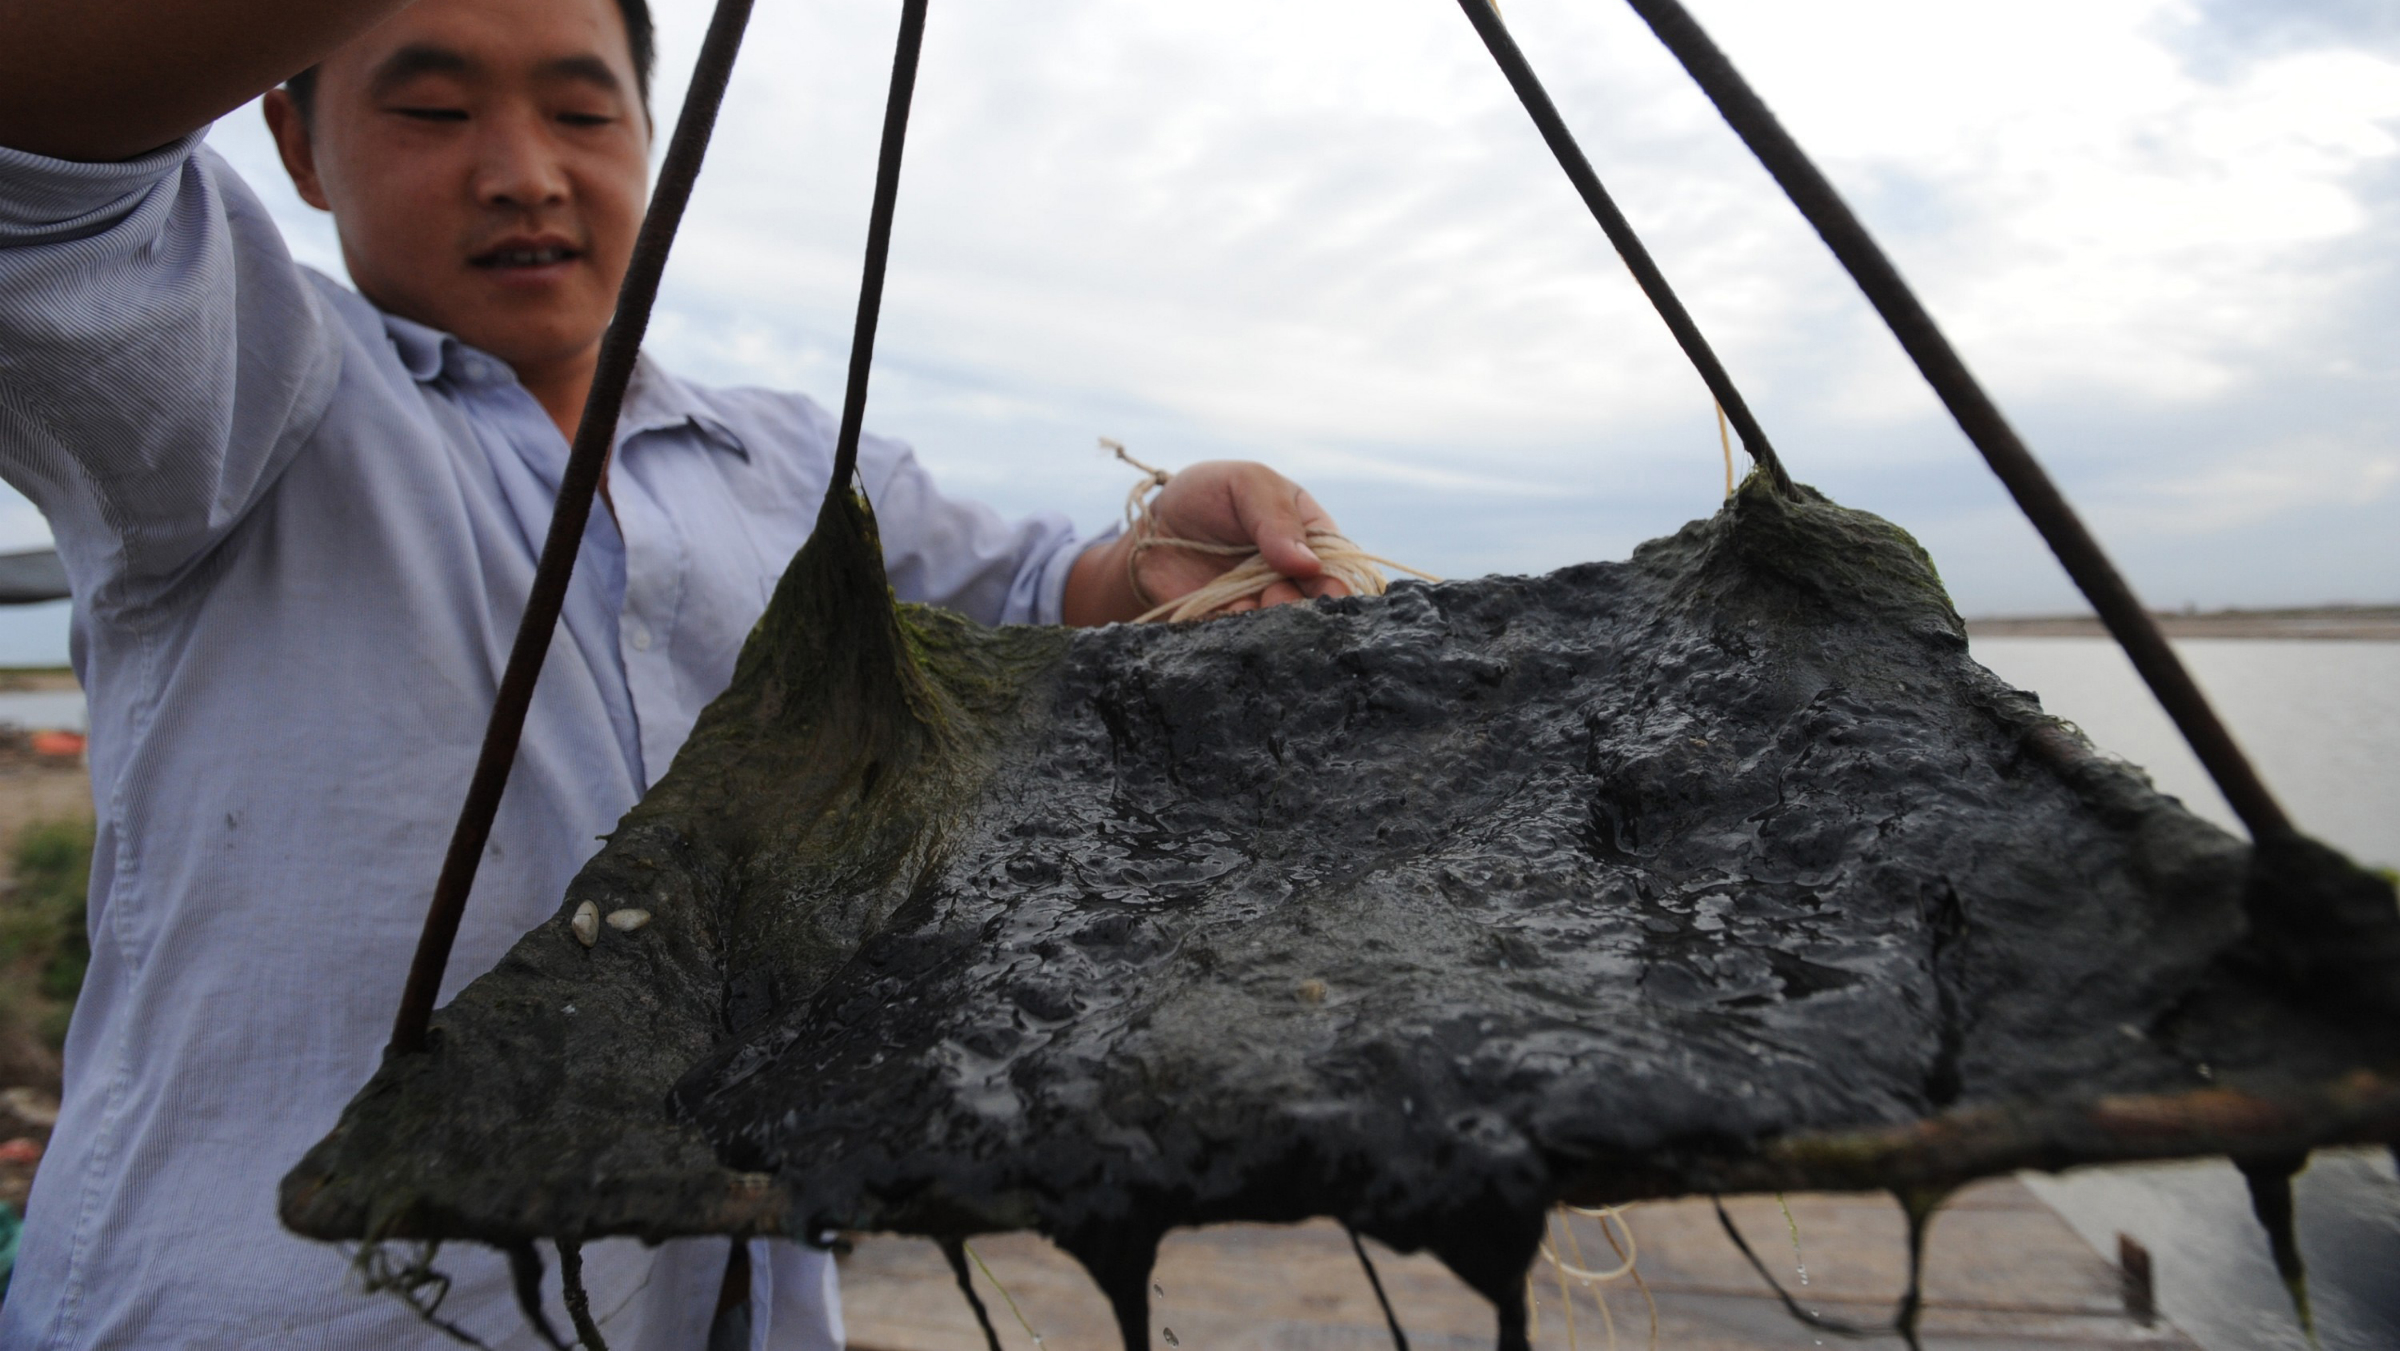 A man shows black oil slick in Tangshan, north Chinas Hebei province, 3 September 2011. Chinas coastal waters regulator on 2 September ordered ConocoPhillips to suspend production in the countrys largest off-shore oil field, citing negligence by the U.S. energy company in handling underwater leaks. The move by the State Oceanic Administration, which manages Chinese waters, rejects the Houston companys claims this week that it stopped oil leaks associated with spills reported in June.(Imaginechina via AP Images